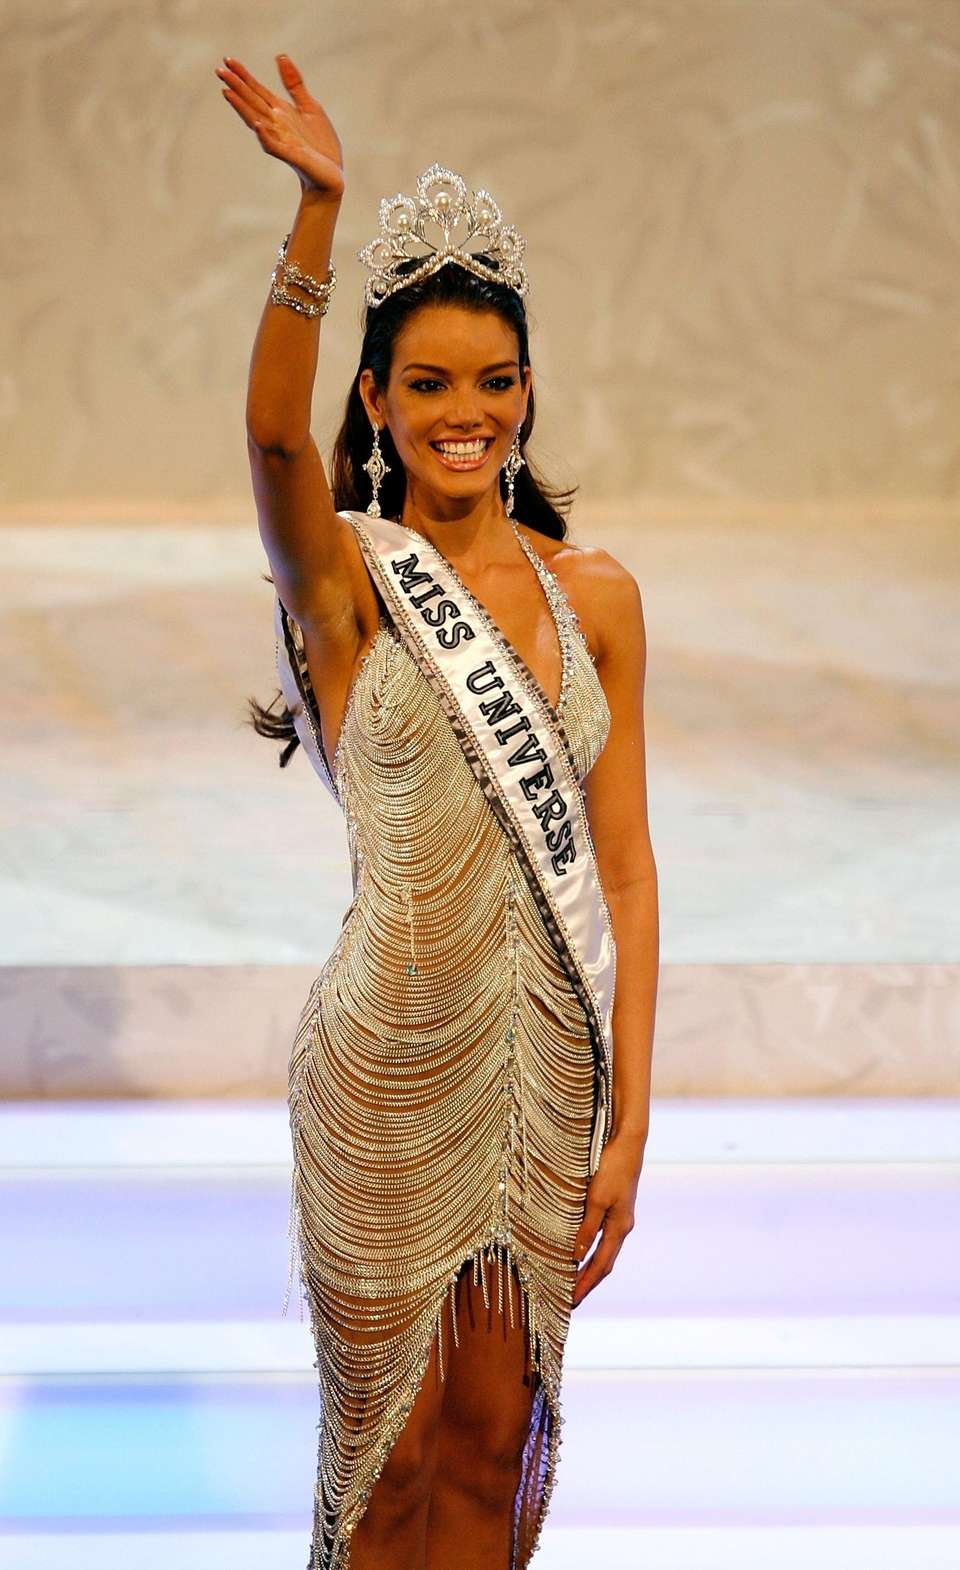 Miss Puerto Rico Zuleyka Rivera Mendoza waves to